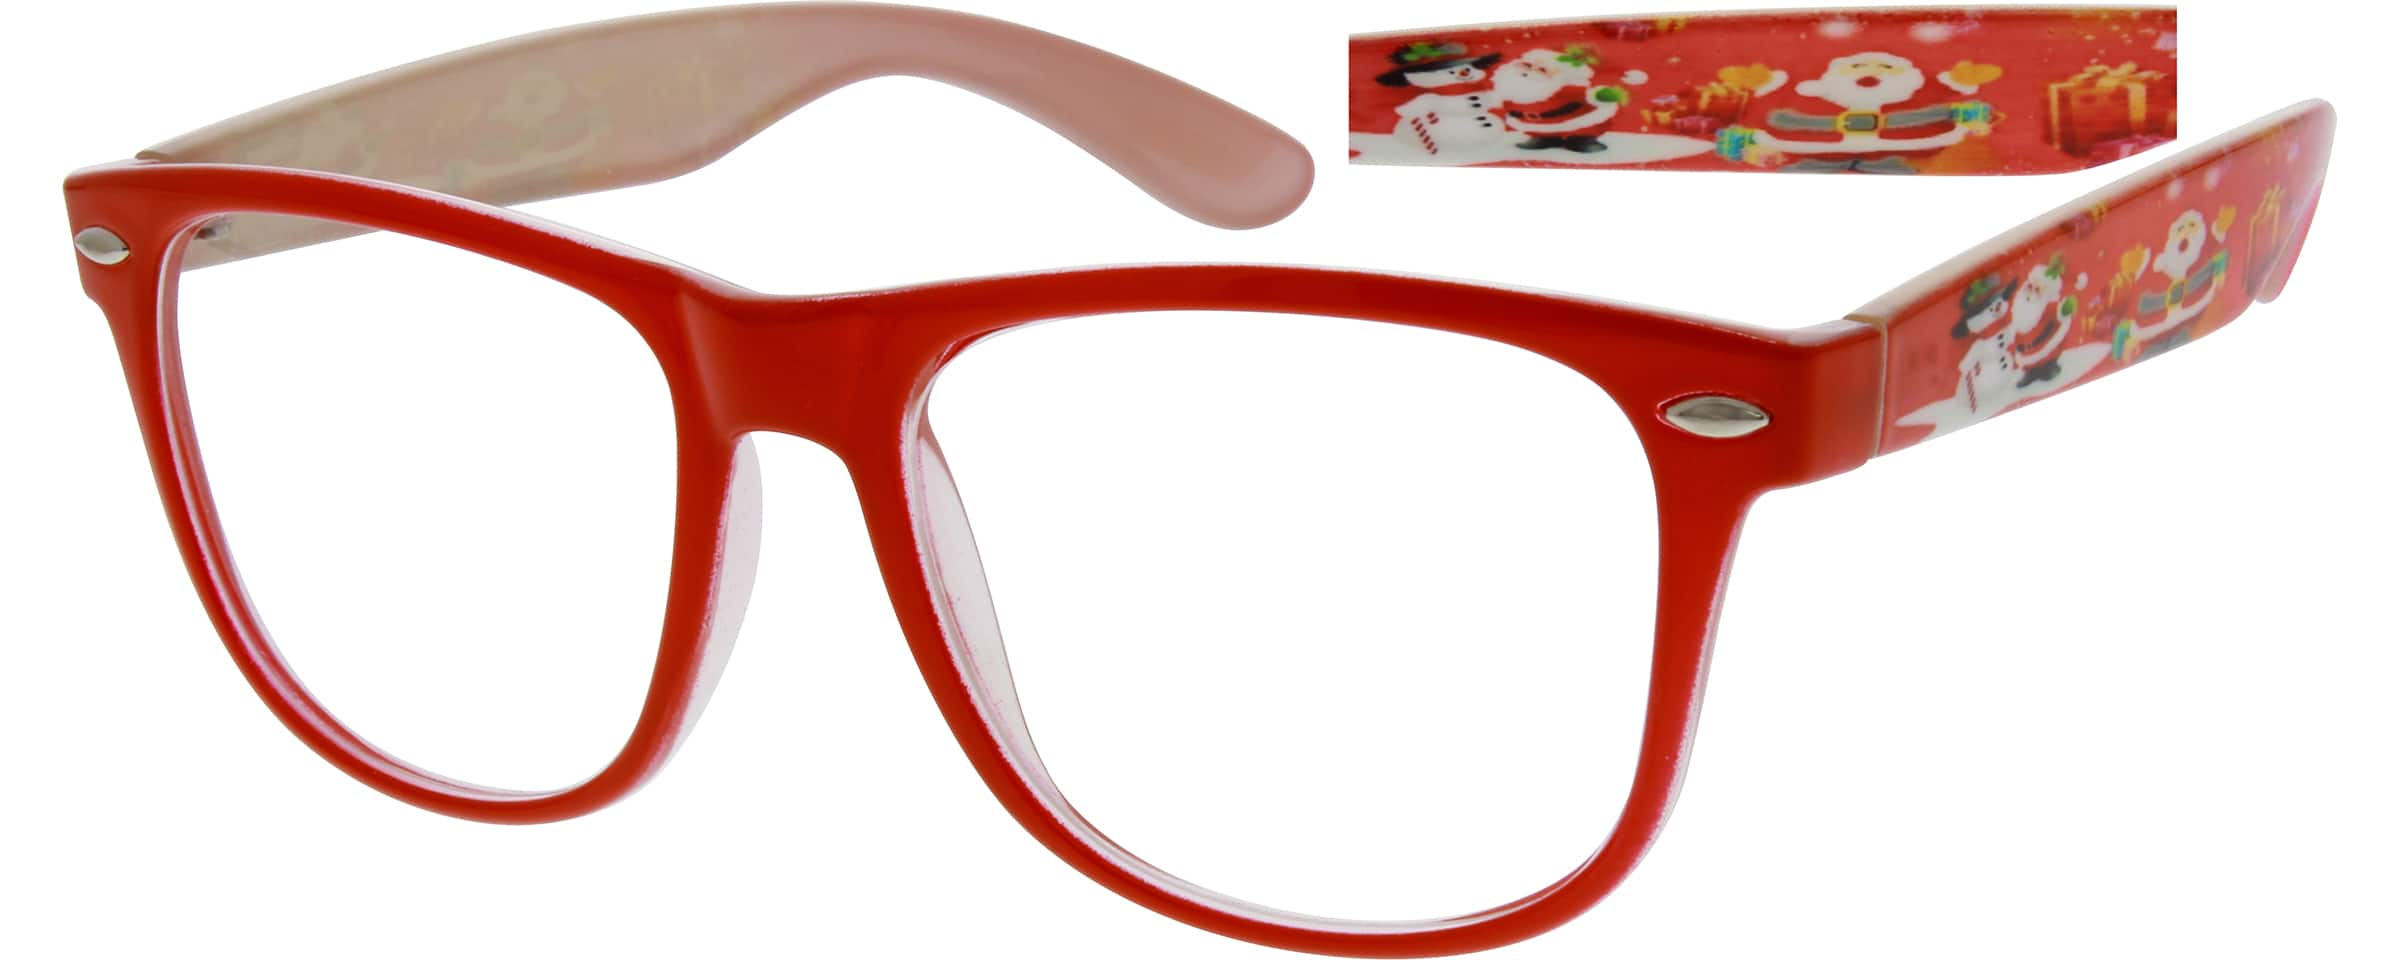 Women Full Rim Acetate/Plastic Eyeglasses #284718